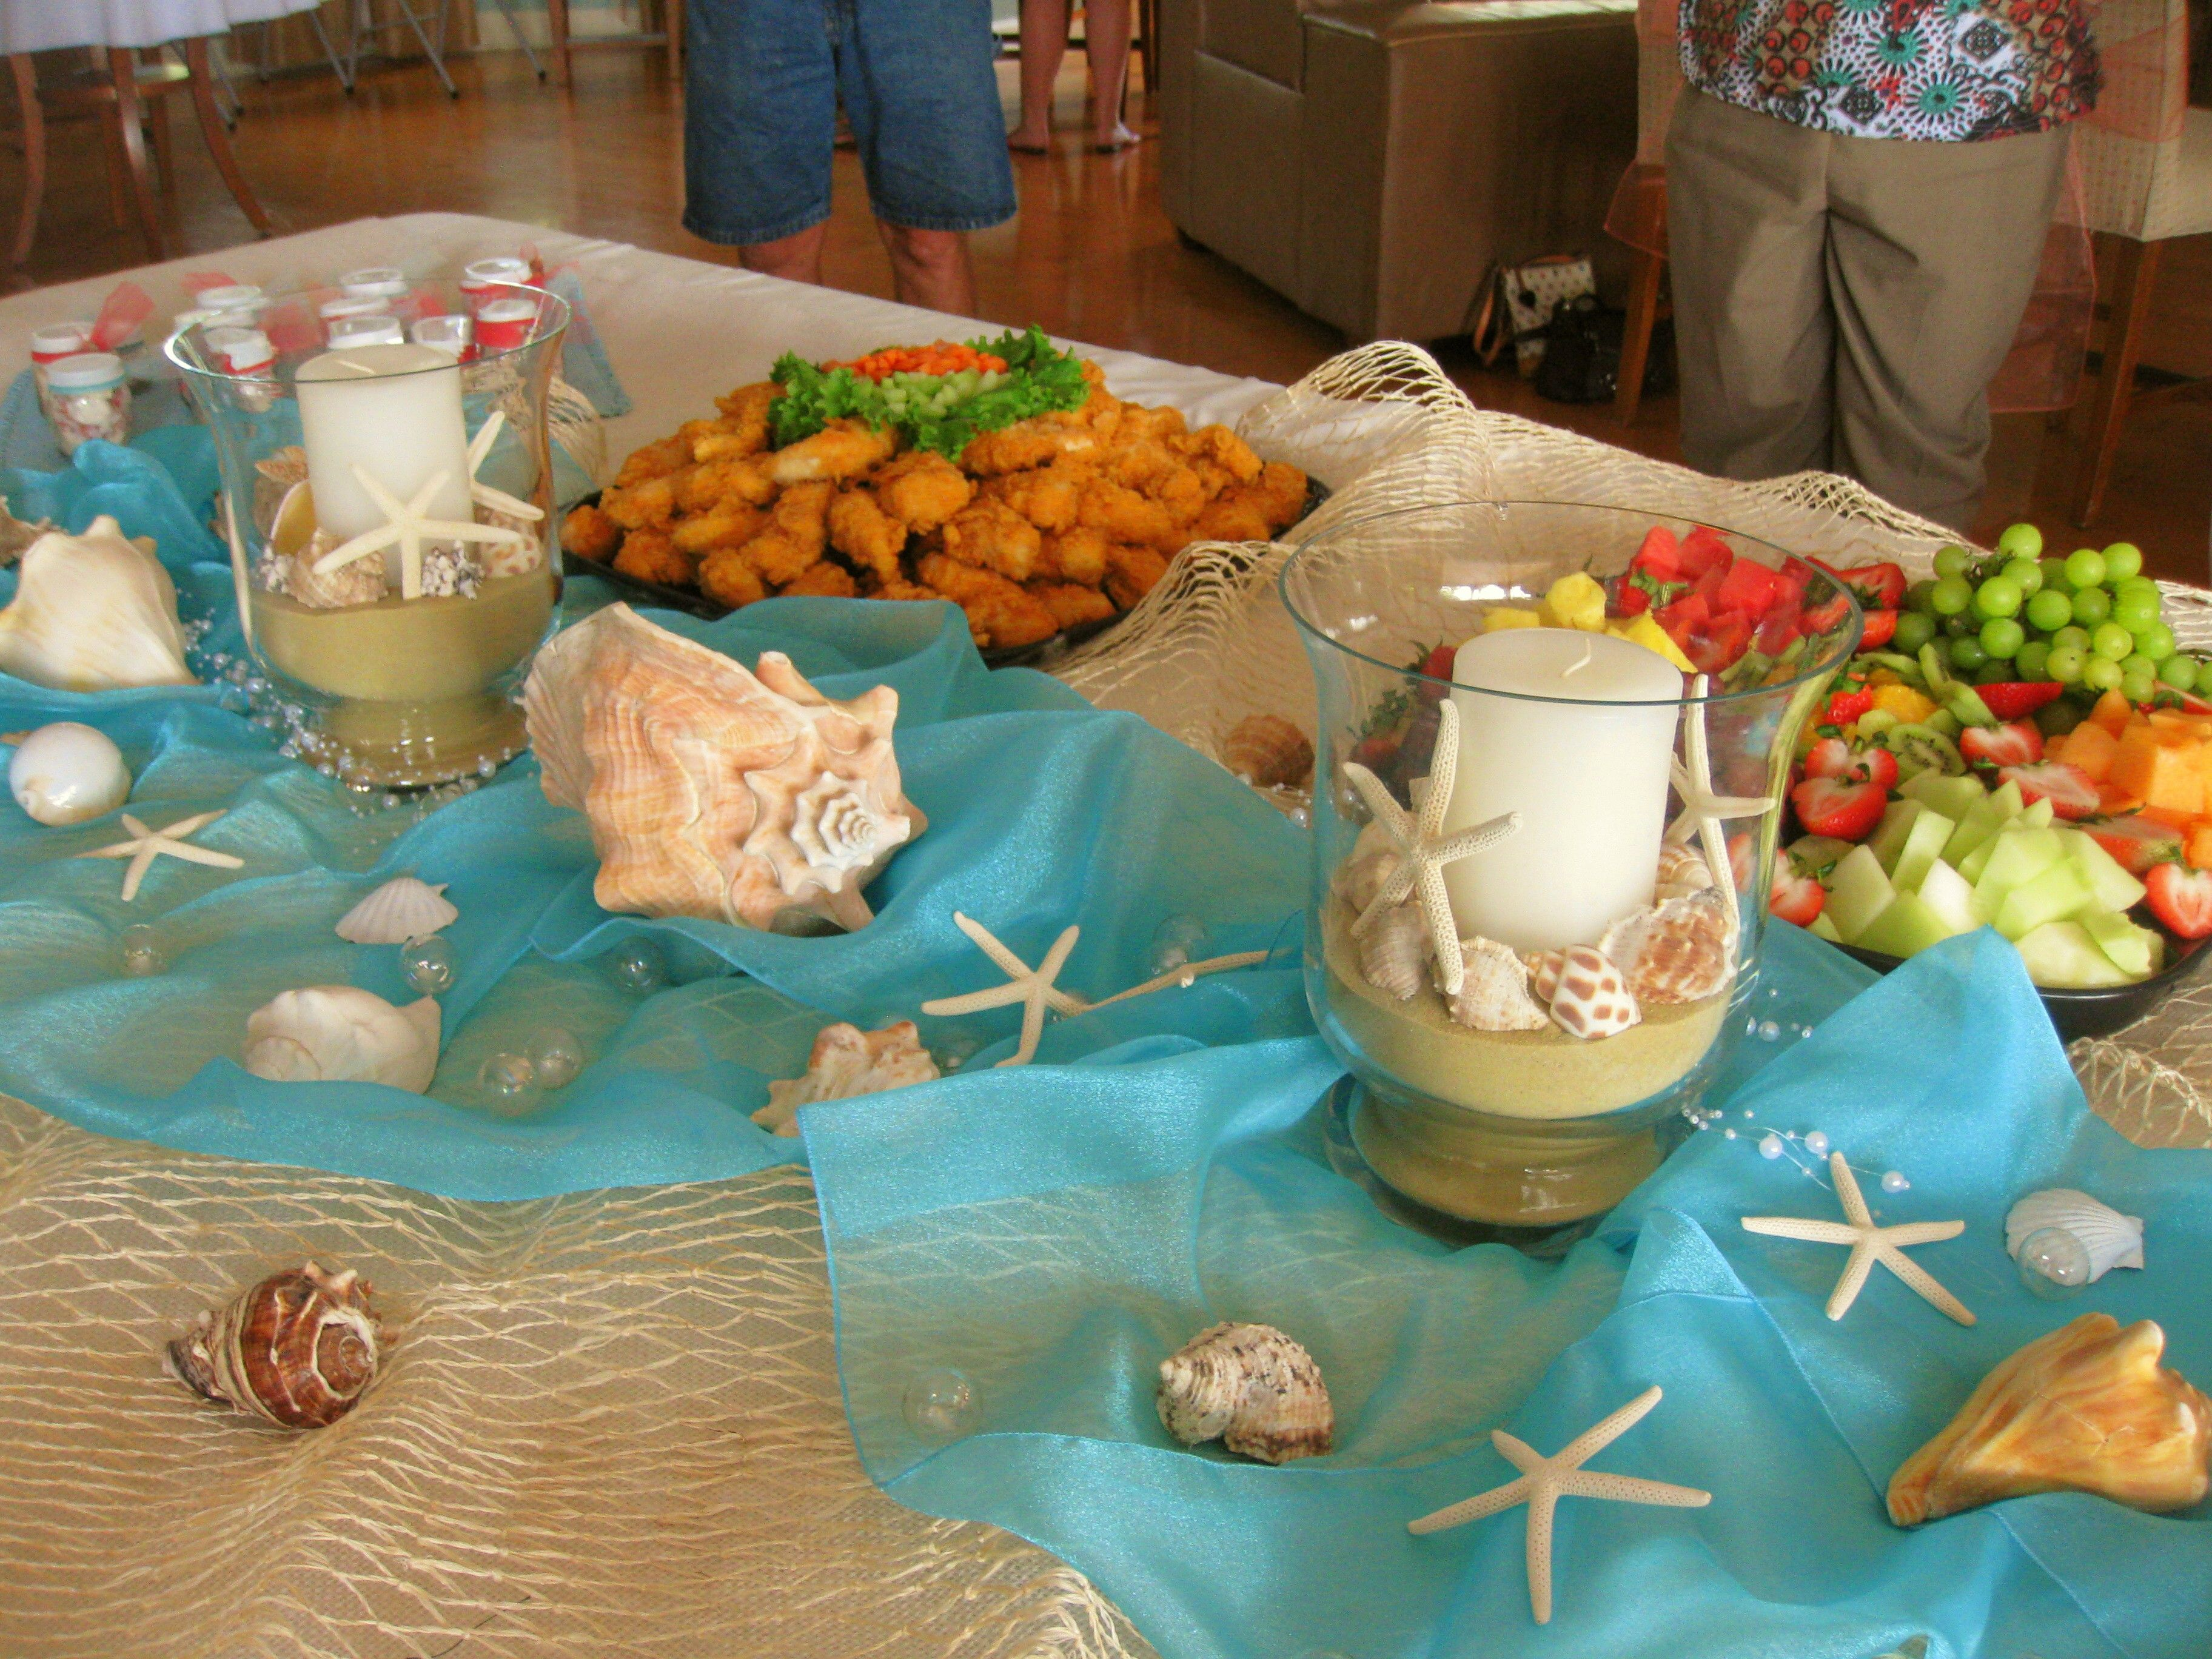 Beach Baby Shower - Food Table - Sand & Shell Candles ...